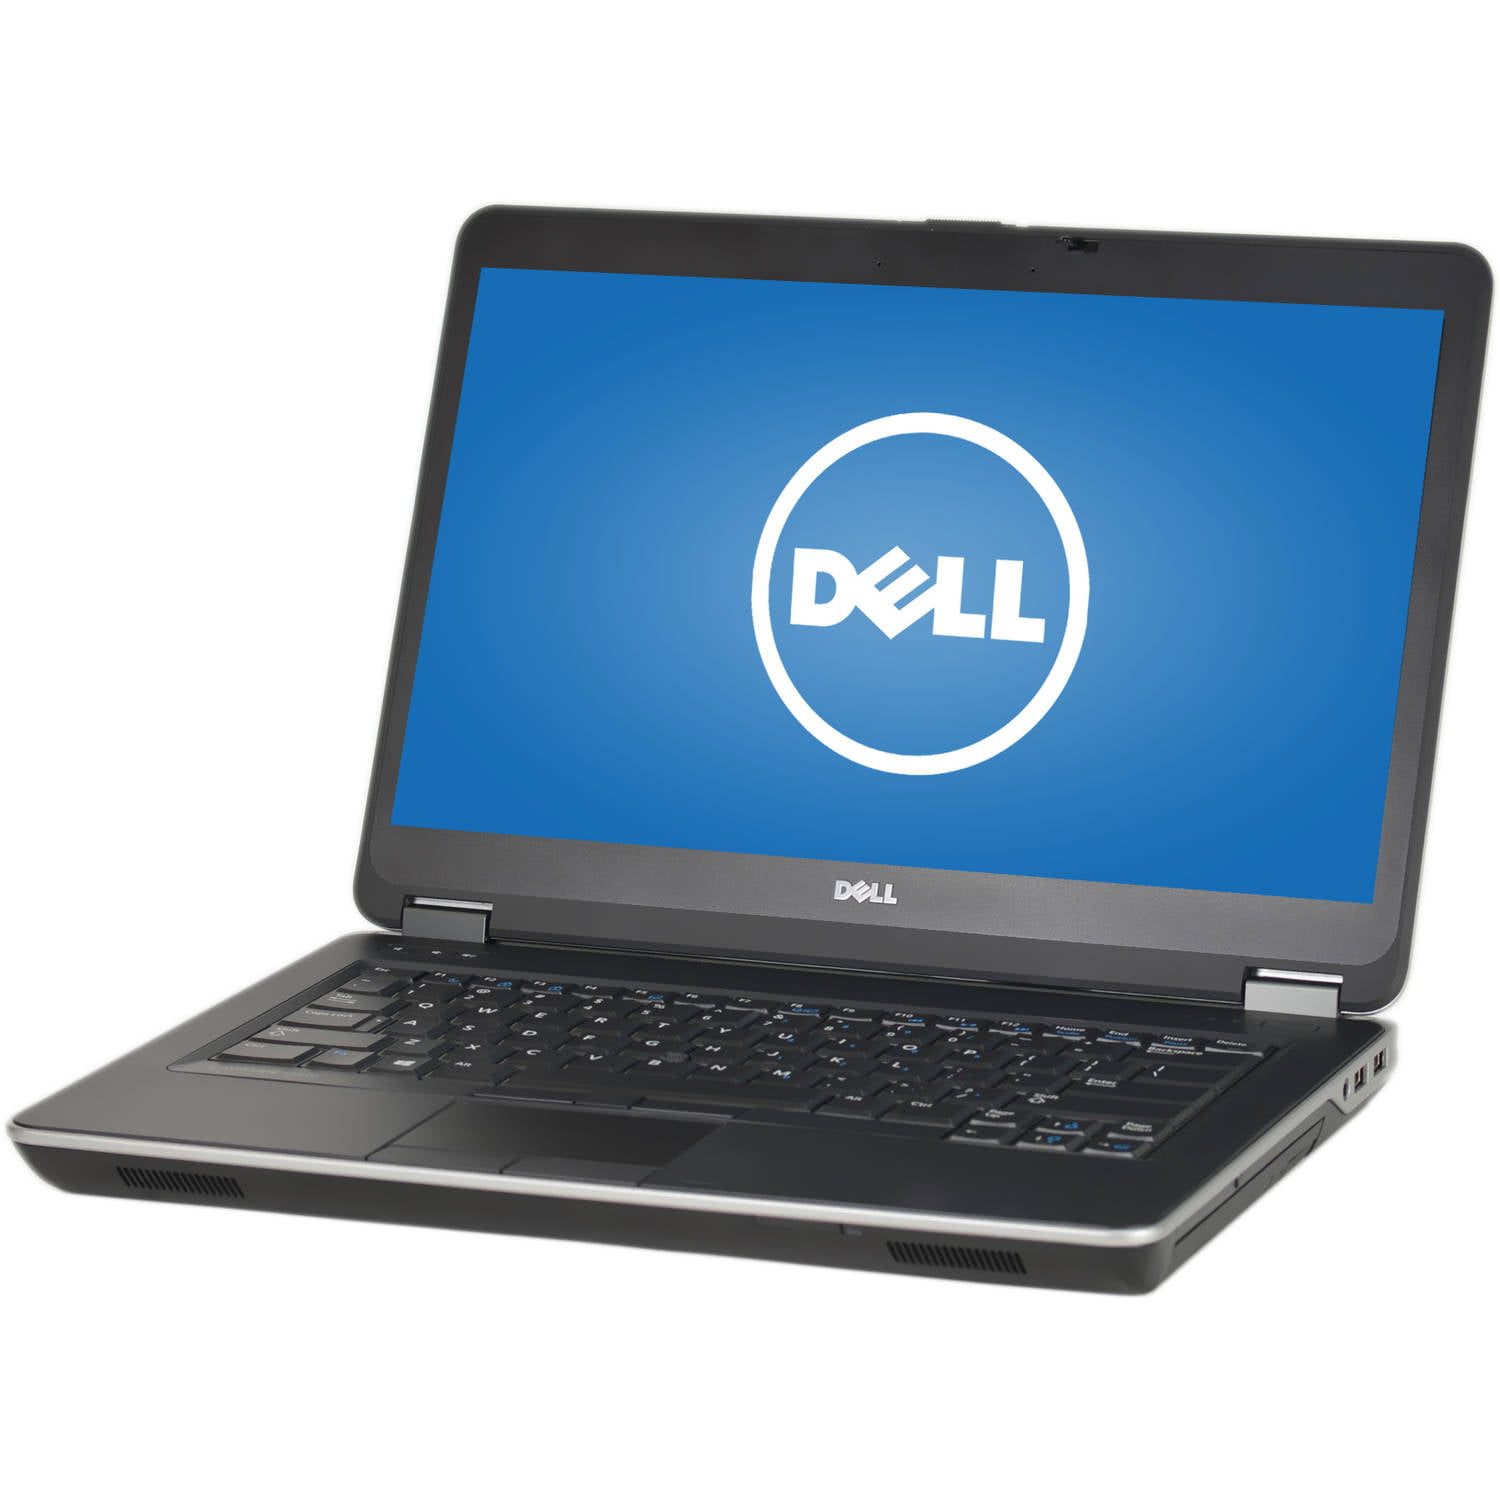 Offerta Dell Latitude E6440 su TrovaUsati.it